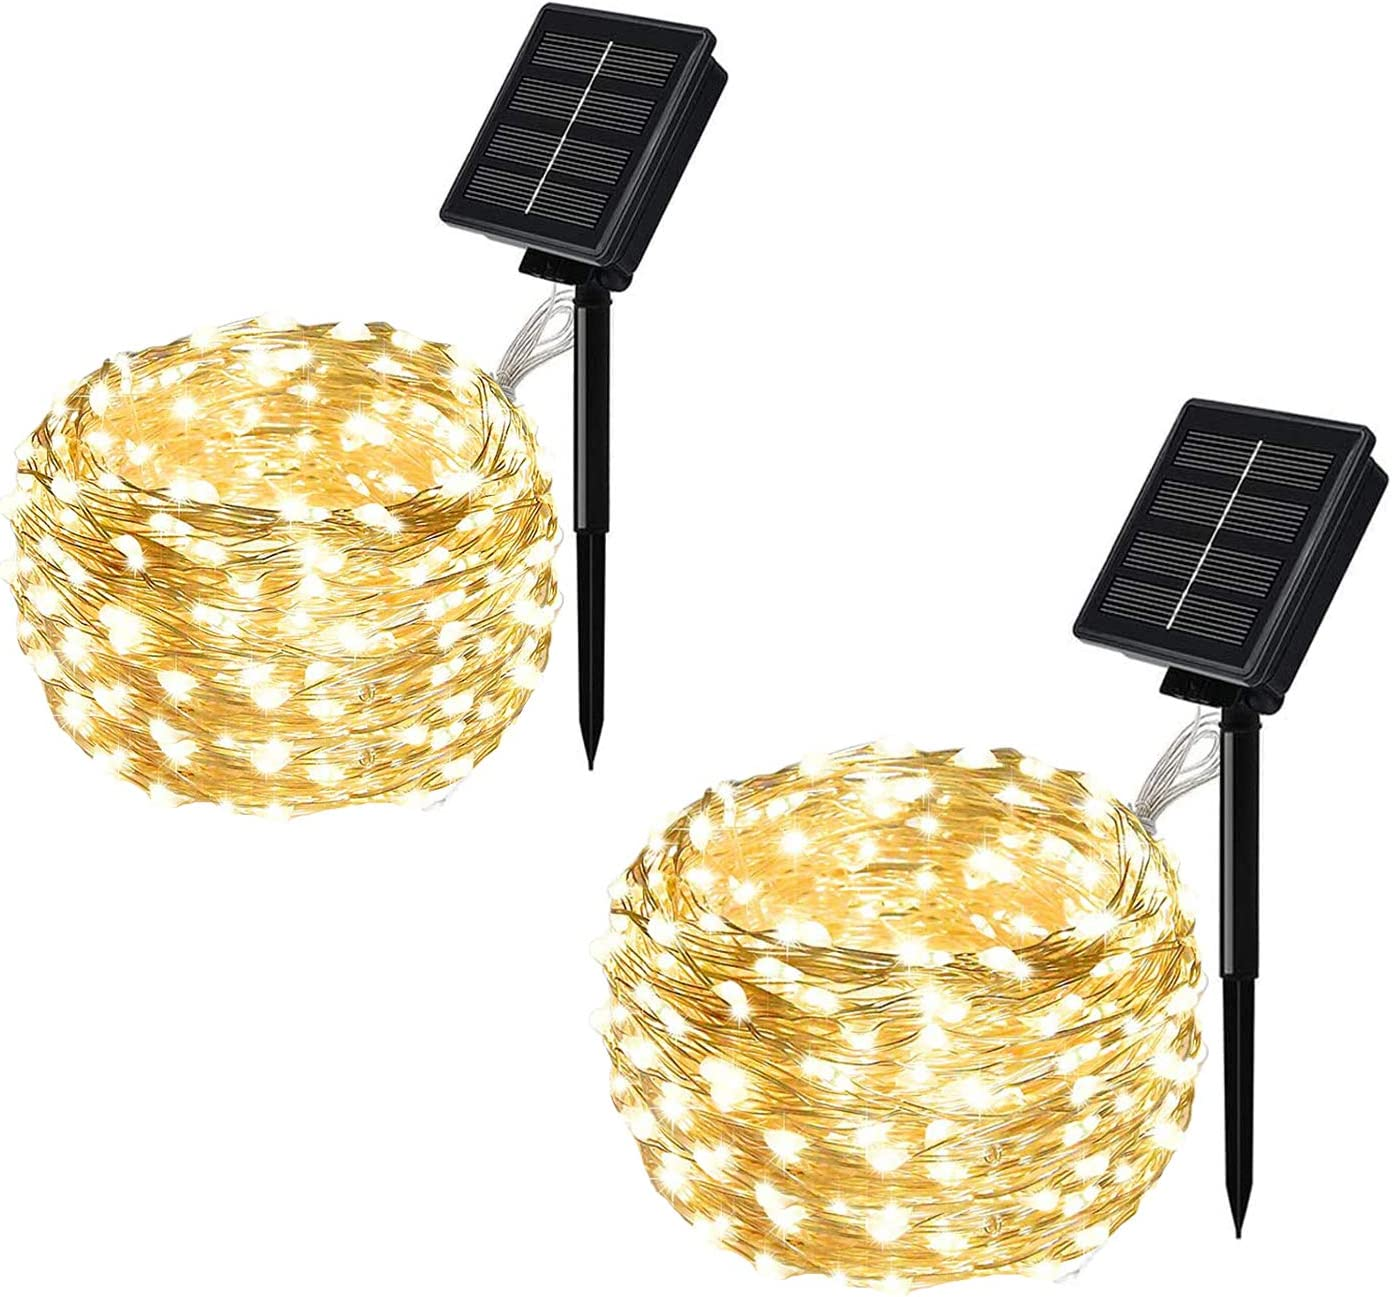 MAOKOT Solar Powered String Lights, 2 Pack 100 LED Mini Solar String Lights, 33ft 8 Modes Copper Wire Fairy String Lights for Garden Patio Party Wedding Christmas(Warm White)